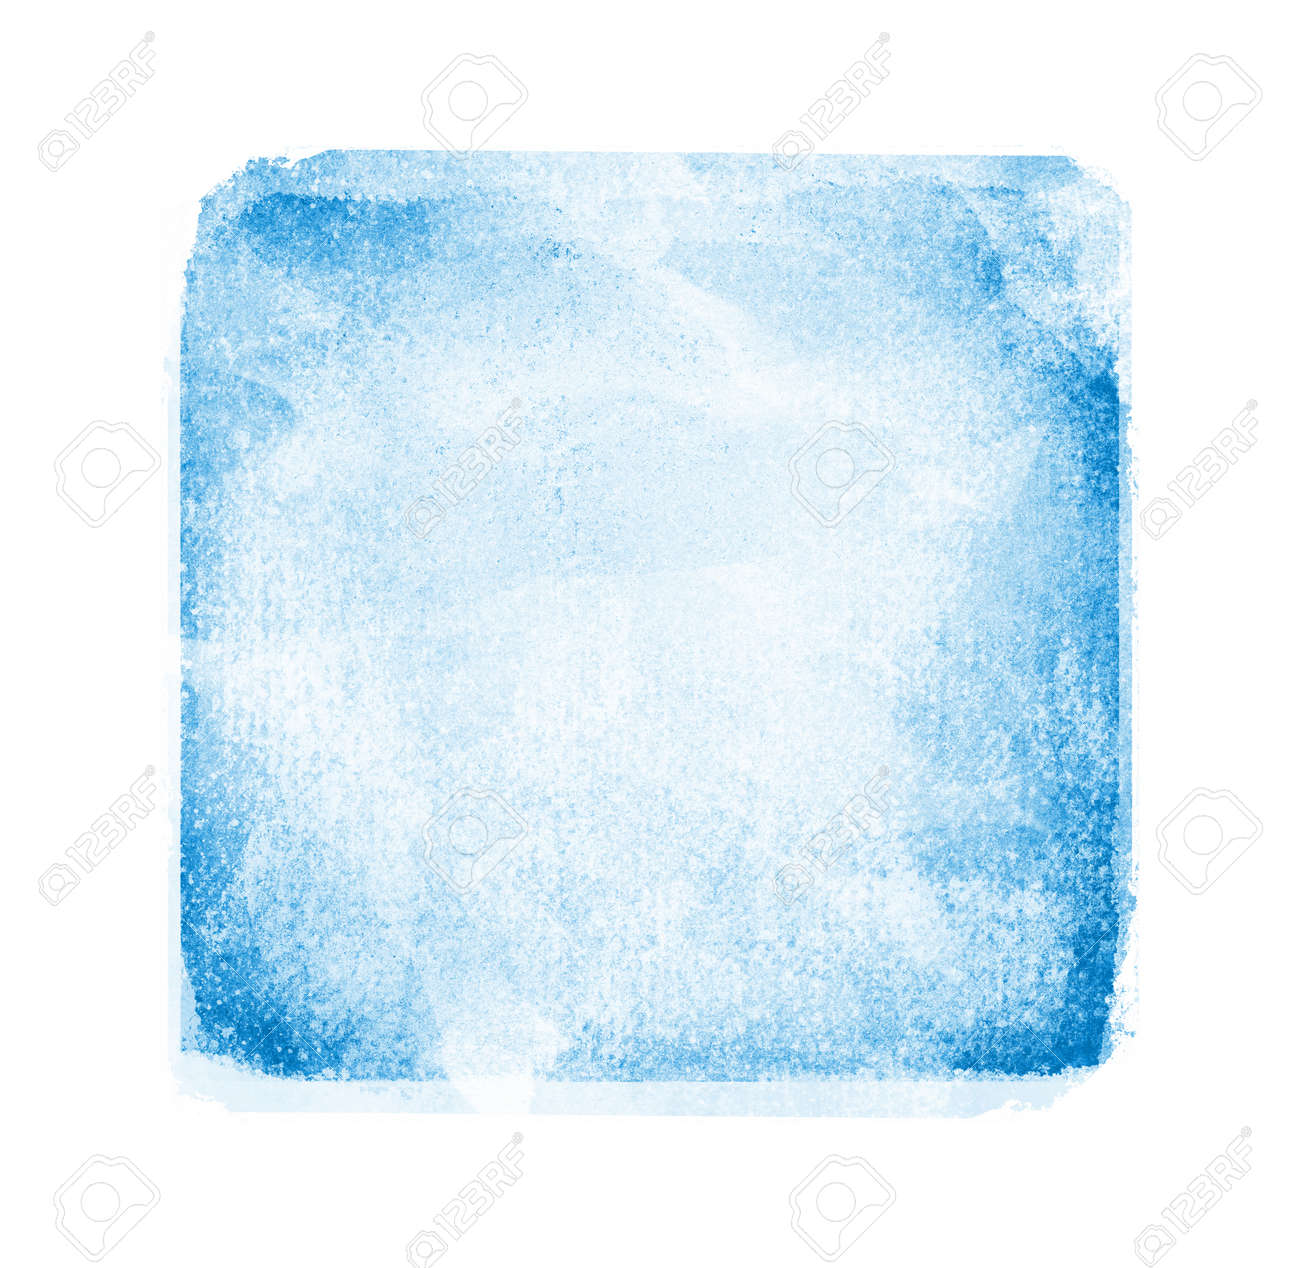 Watercolor sqaure on white background - 138165518